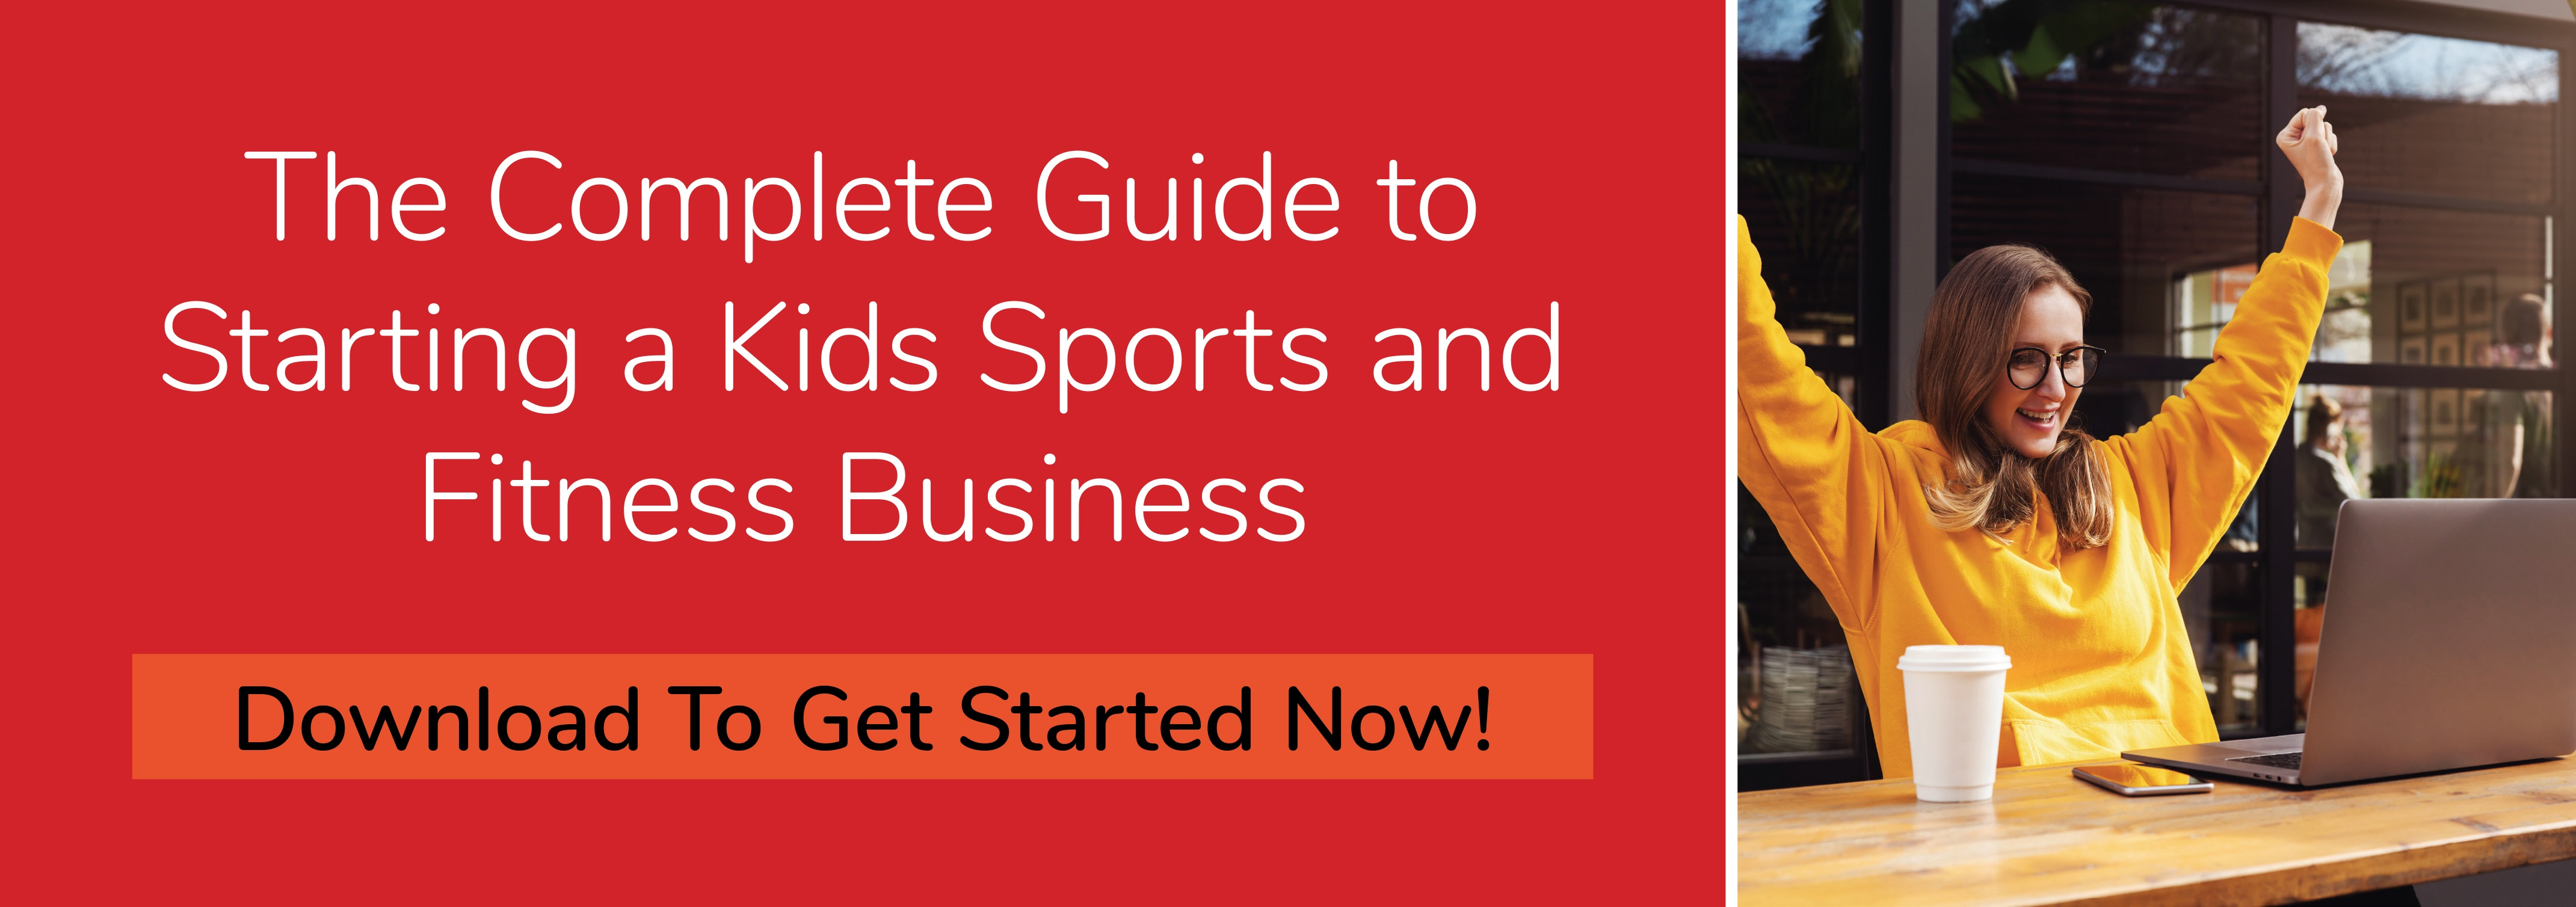 Download Guide to Kids Sports and Fitness Business